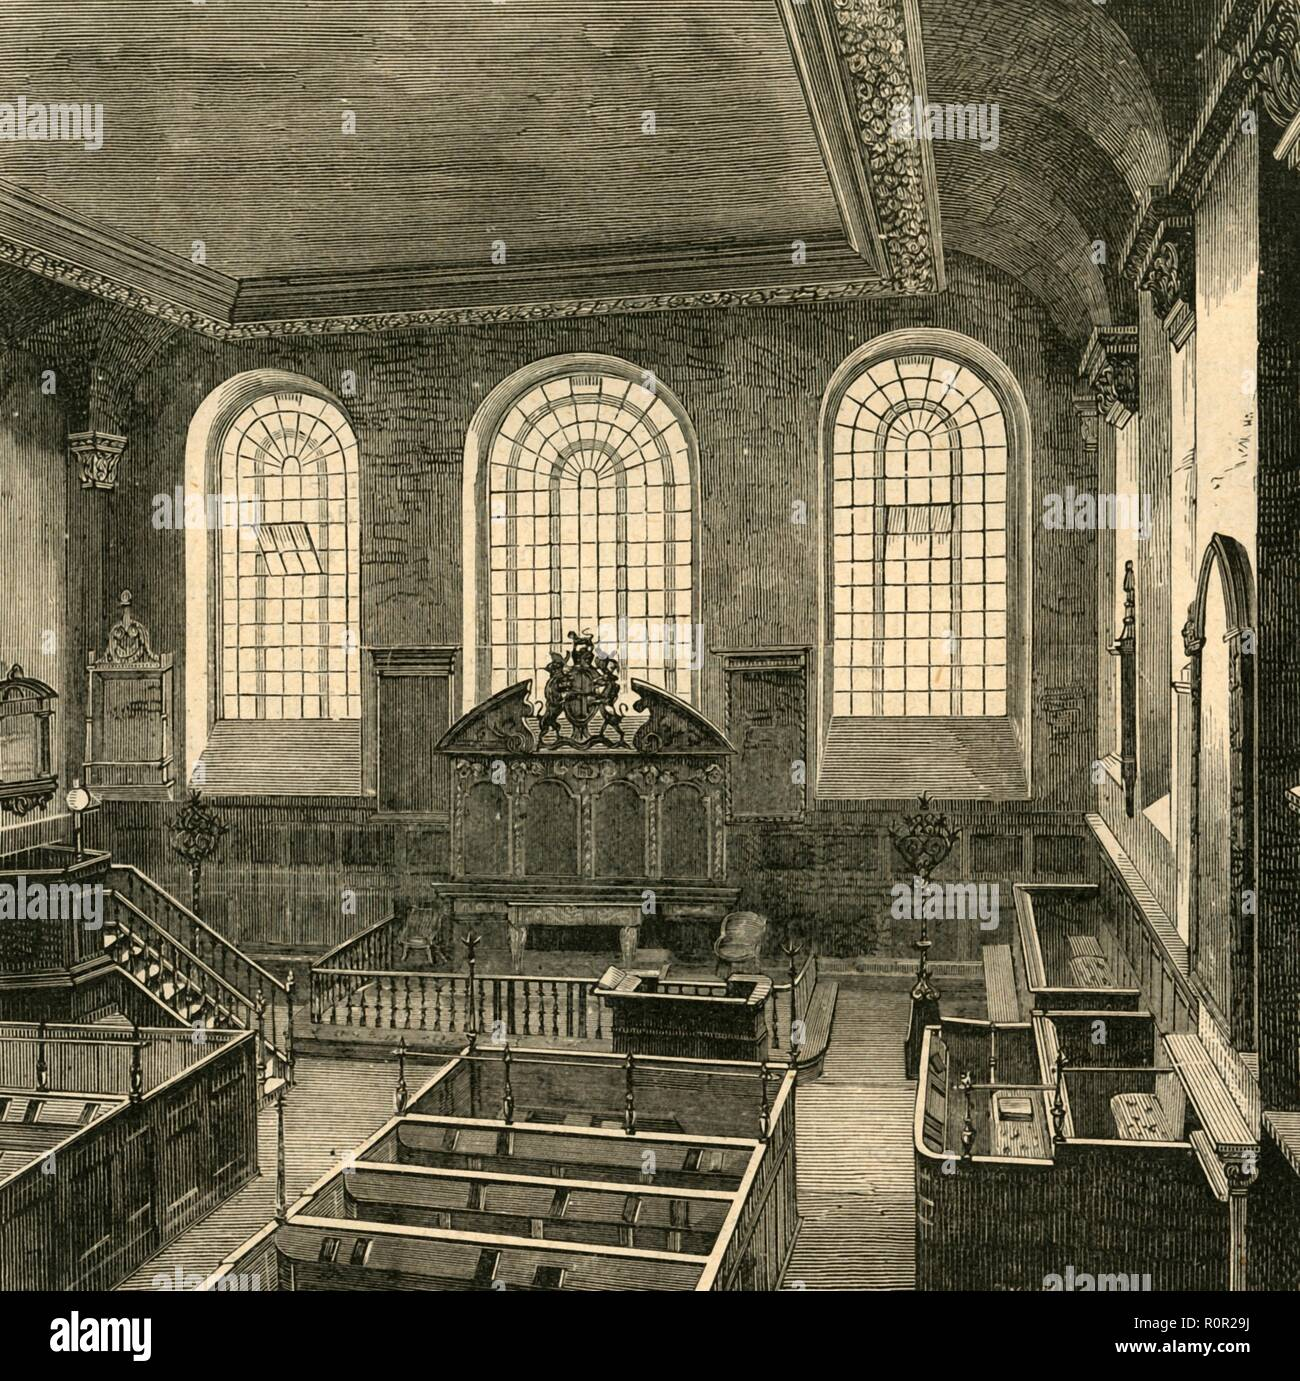 'Interior of St. Michael's, Wood Street, 1876', (1897). The church of St Michael Wood Street in the City of London, the burial site for the head of King James IV of Scotland (1473-1513). The building seen here was designed by Christopher Wren in 1673 after the previous church was destroyed in the Great Fire of 1666. From Old and New London, Volume I, by Walter Thornbury. [Cassell and Company, Limited, London, Paris & Melbourne, 1897] - Stock Image